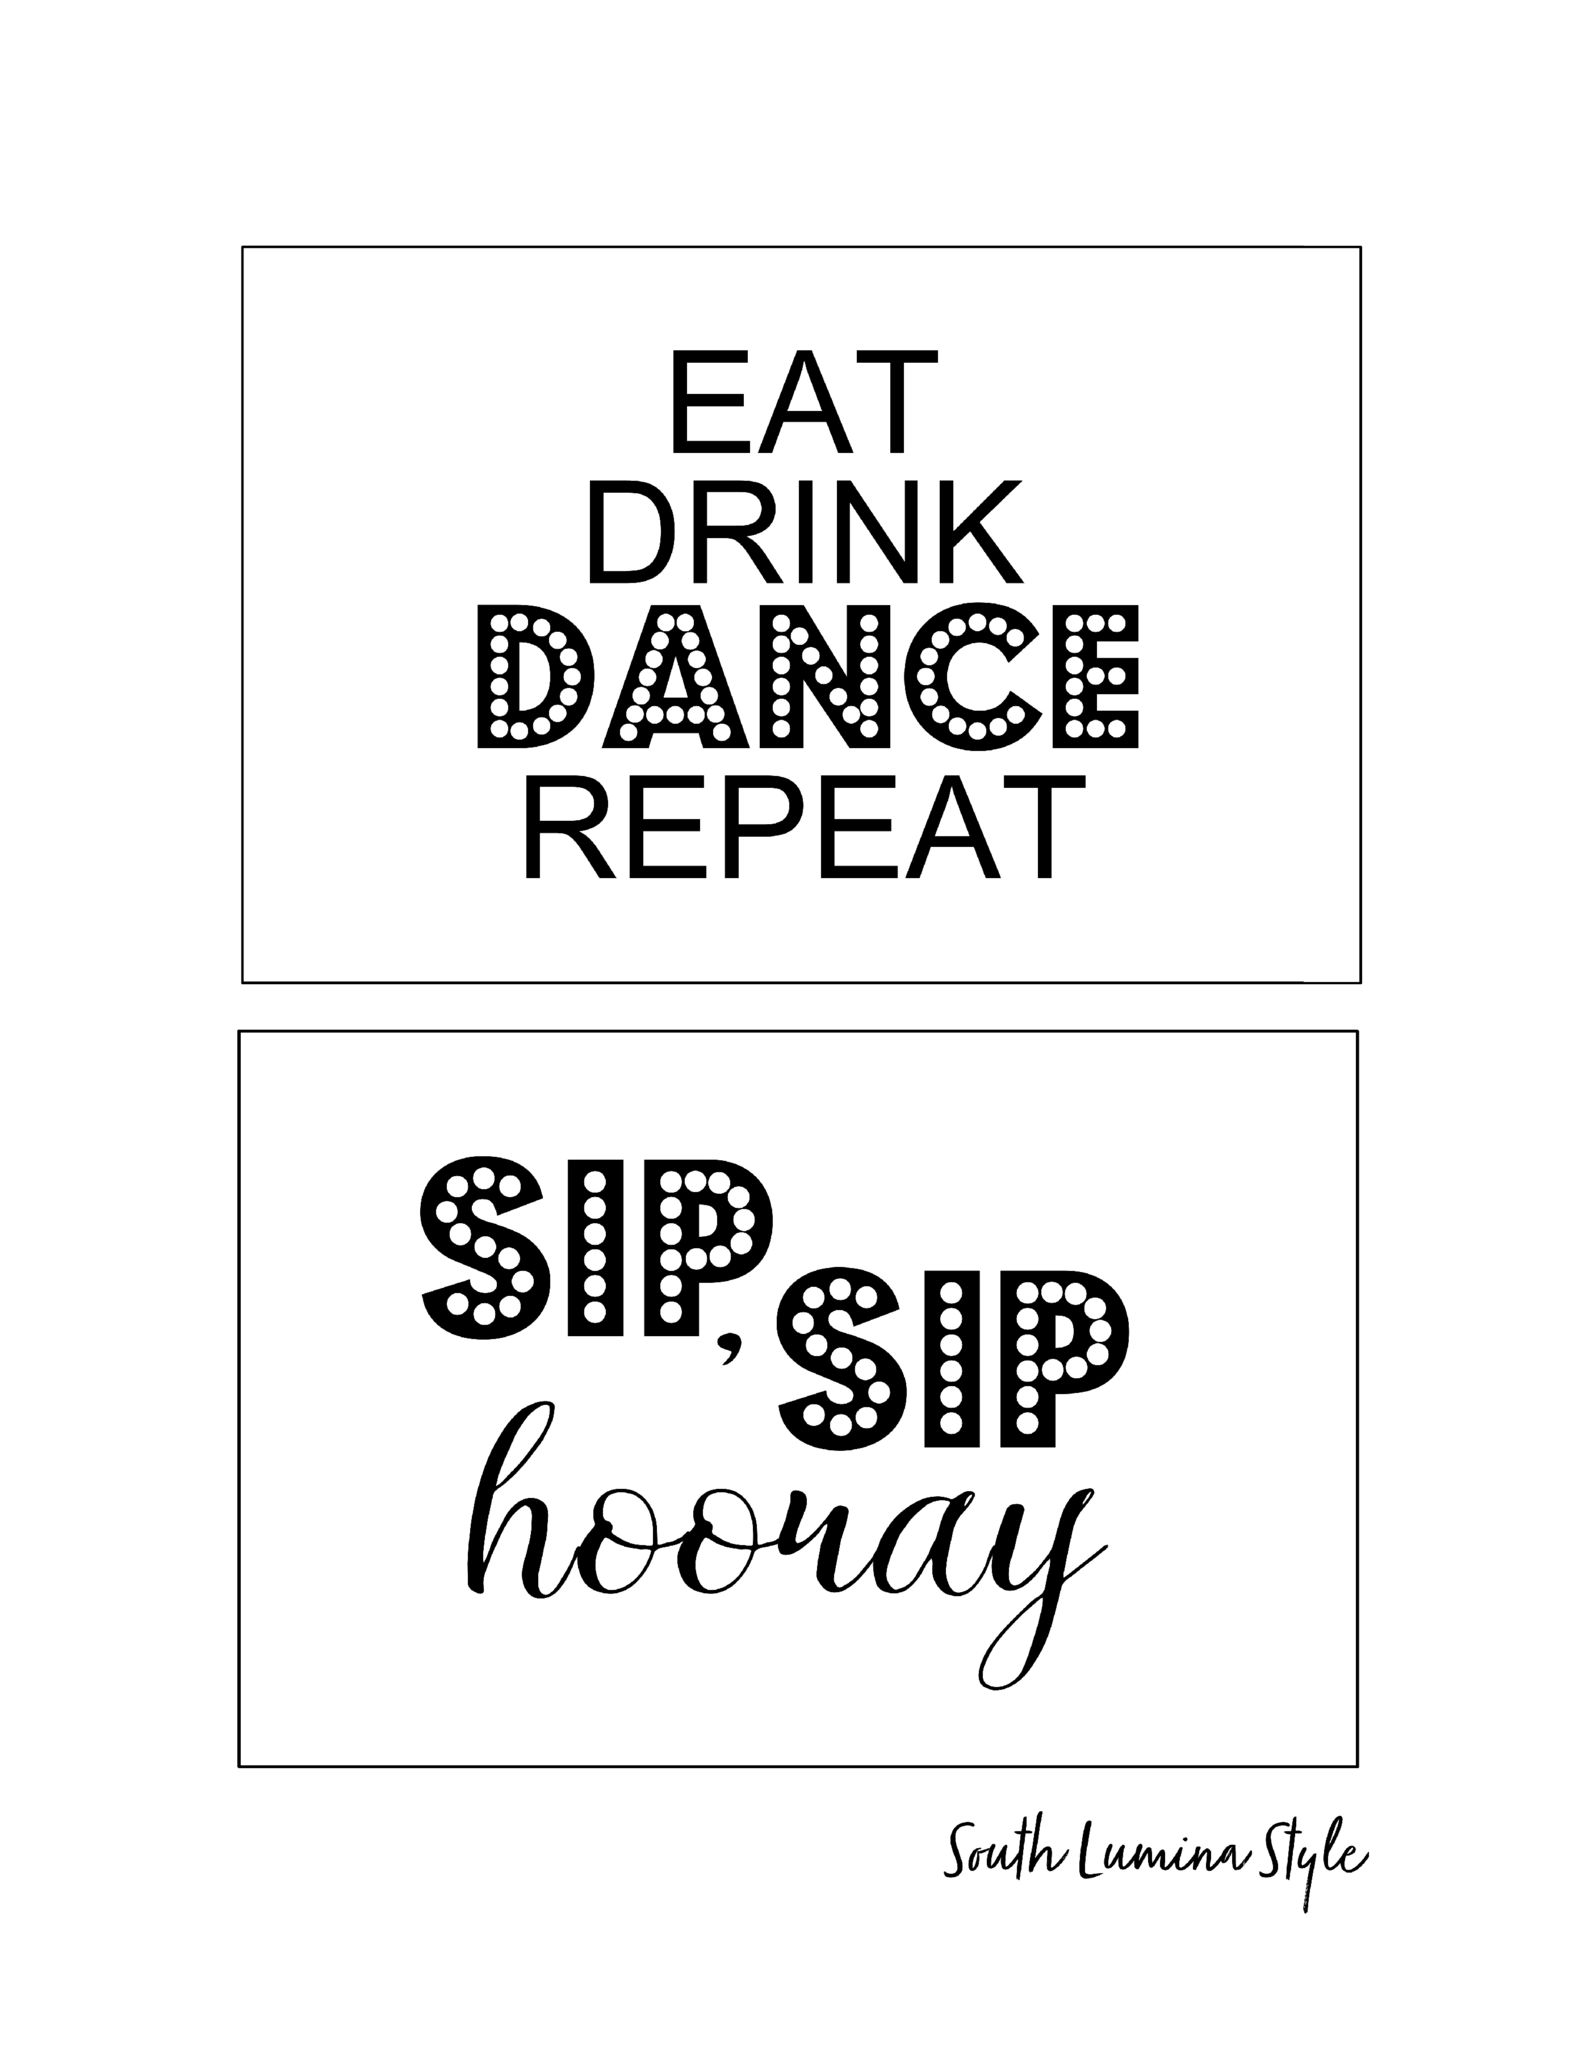 picture about Sip Sip Hooray Printable known as South Lumina Design and style Do it yourself Printable Grownup Birthday Symptoms Try to eat